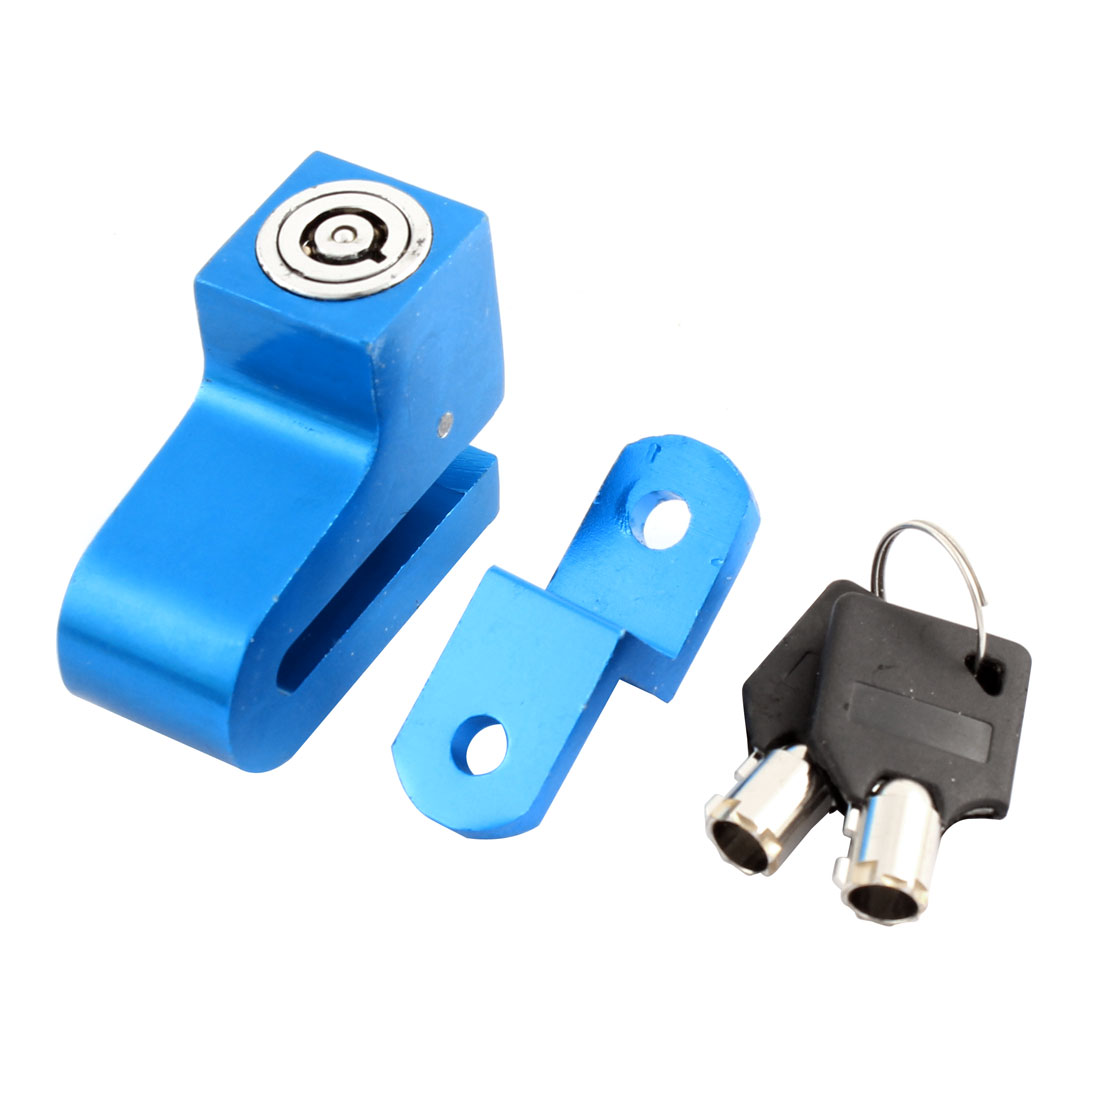 Motorbike Motorcycle Scooter Anti Thief Security Wheel Disc Brake Lock